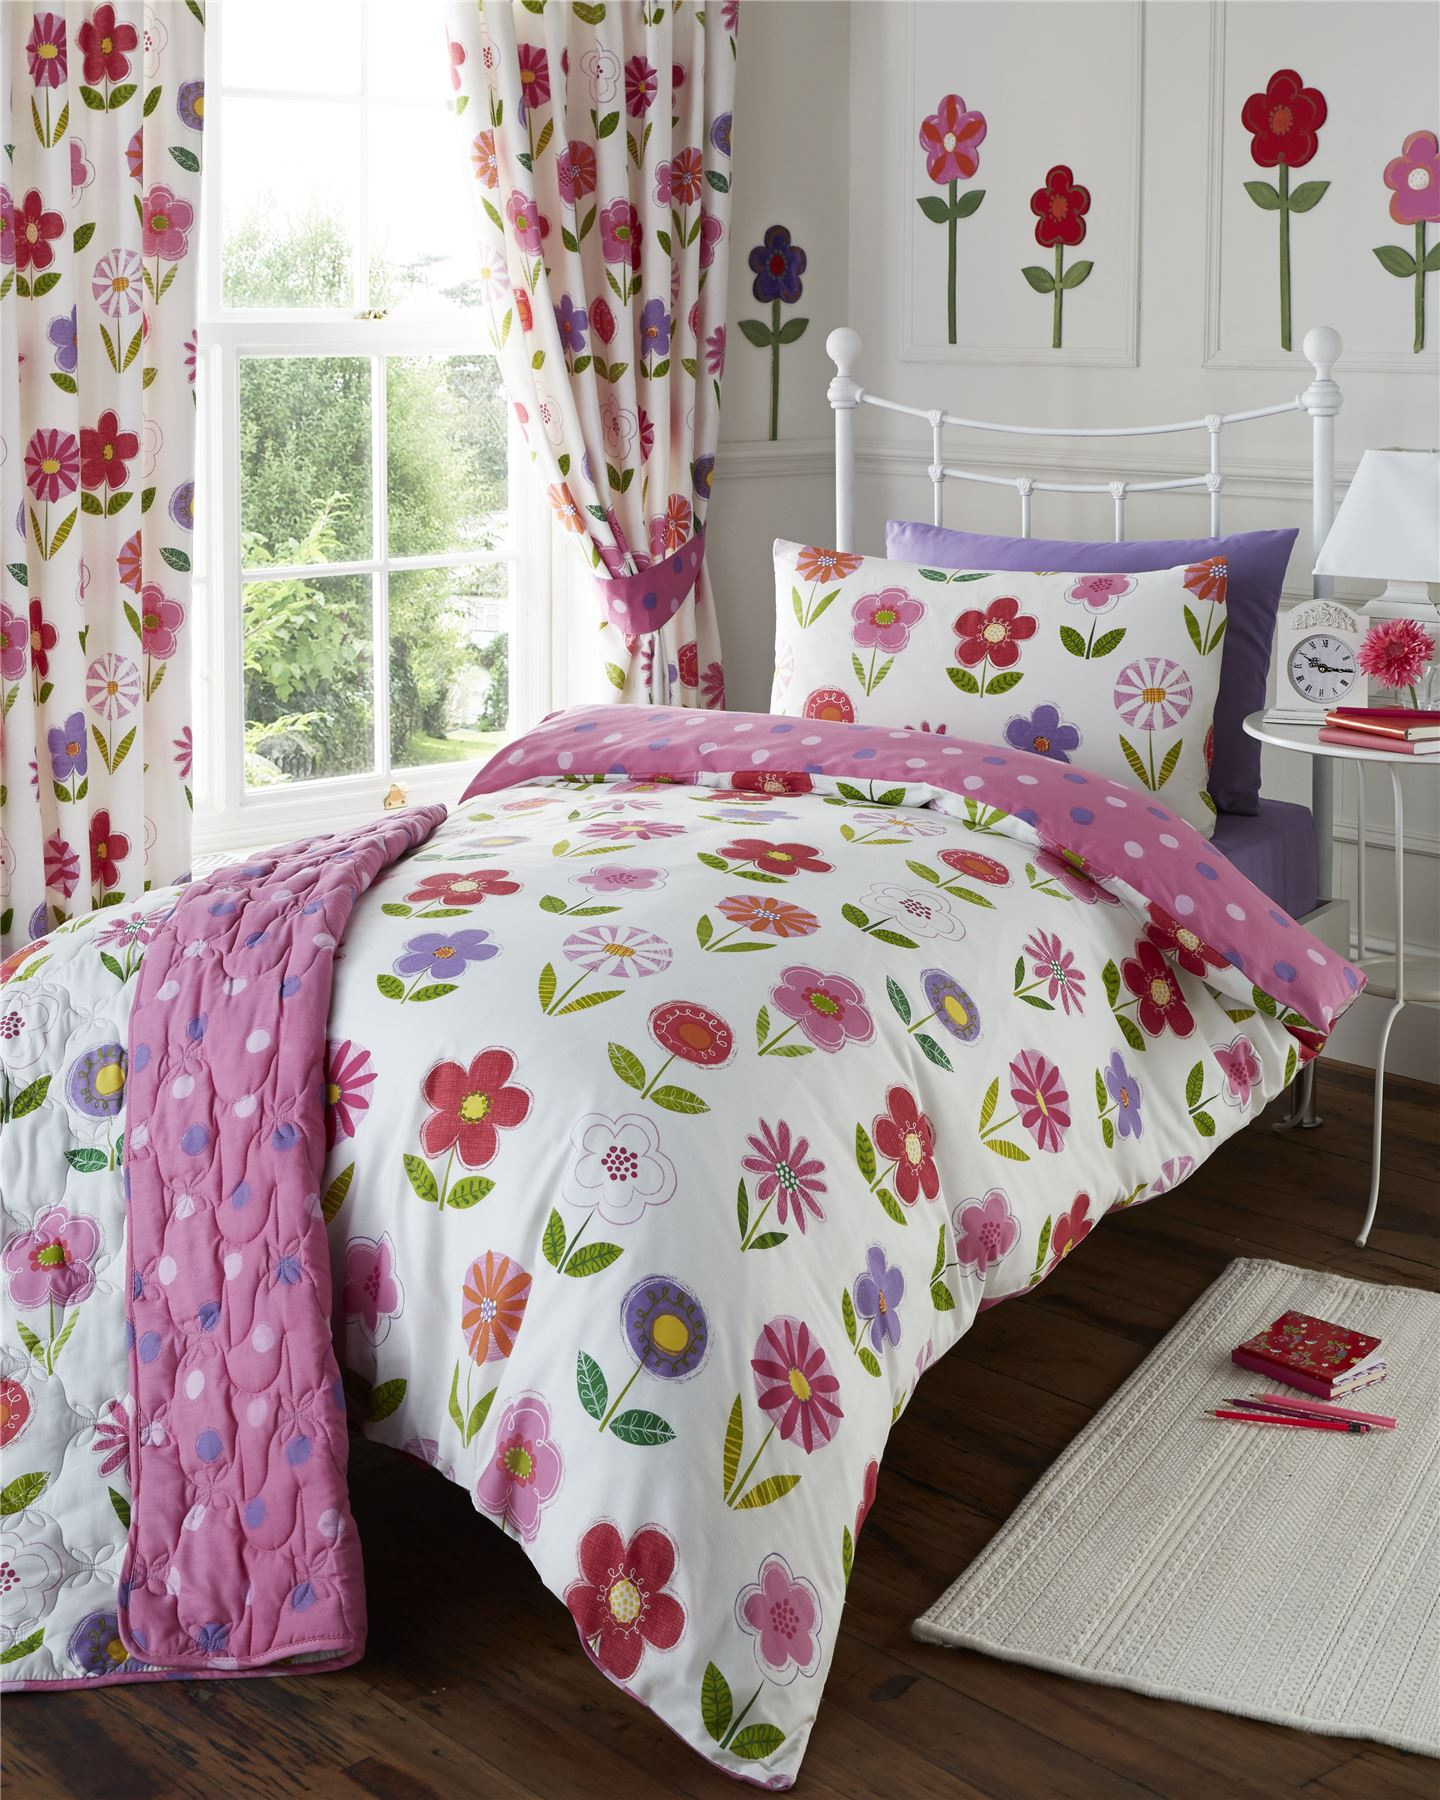 Buy stylish and luxury bedding, children's bedding, duvet covers, curtains, cushions and towels from HomeSpace Direct. View online now at thrushop-9b4y6tny.ga JavaScript seems to be disabled in .